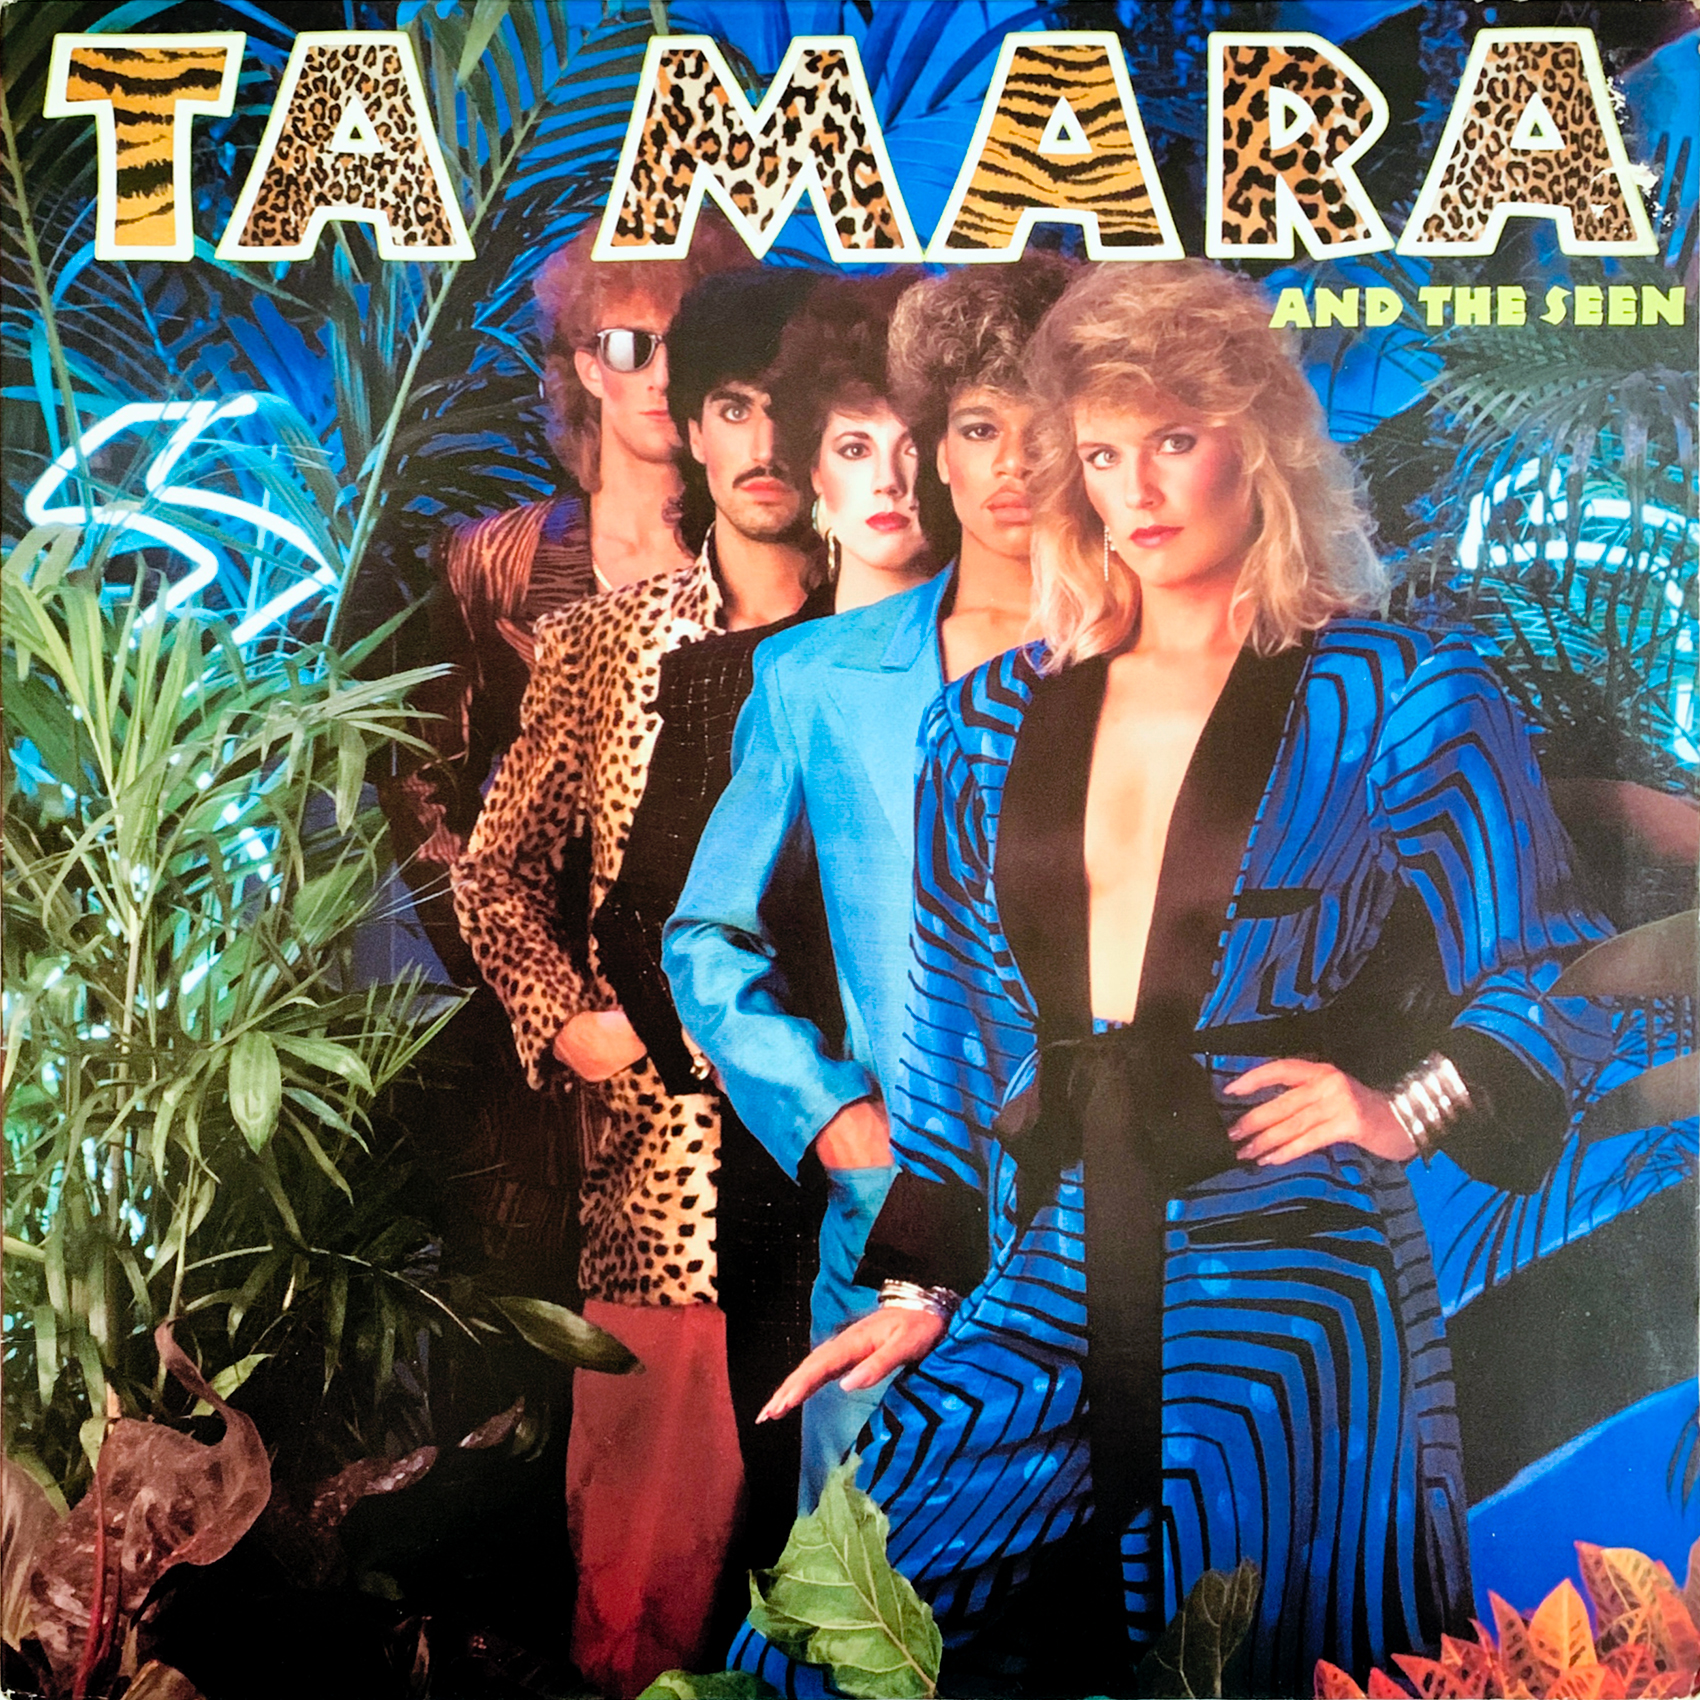 Ta Mara and the Seen - S/T